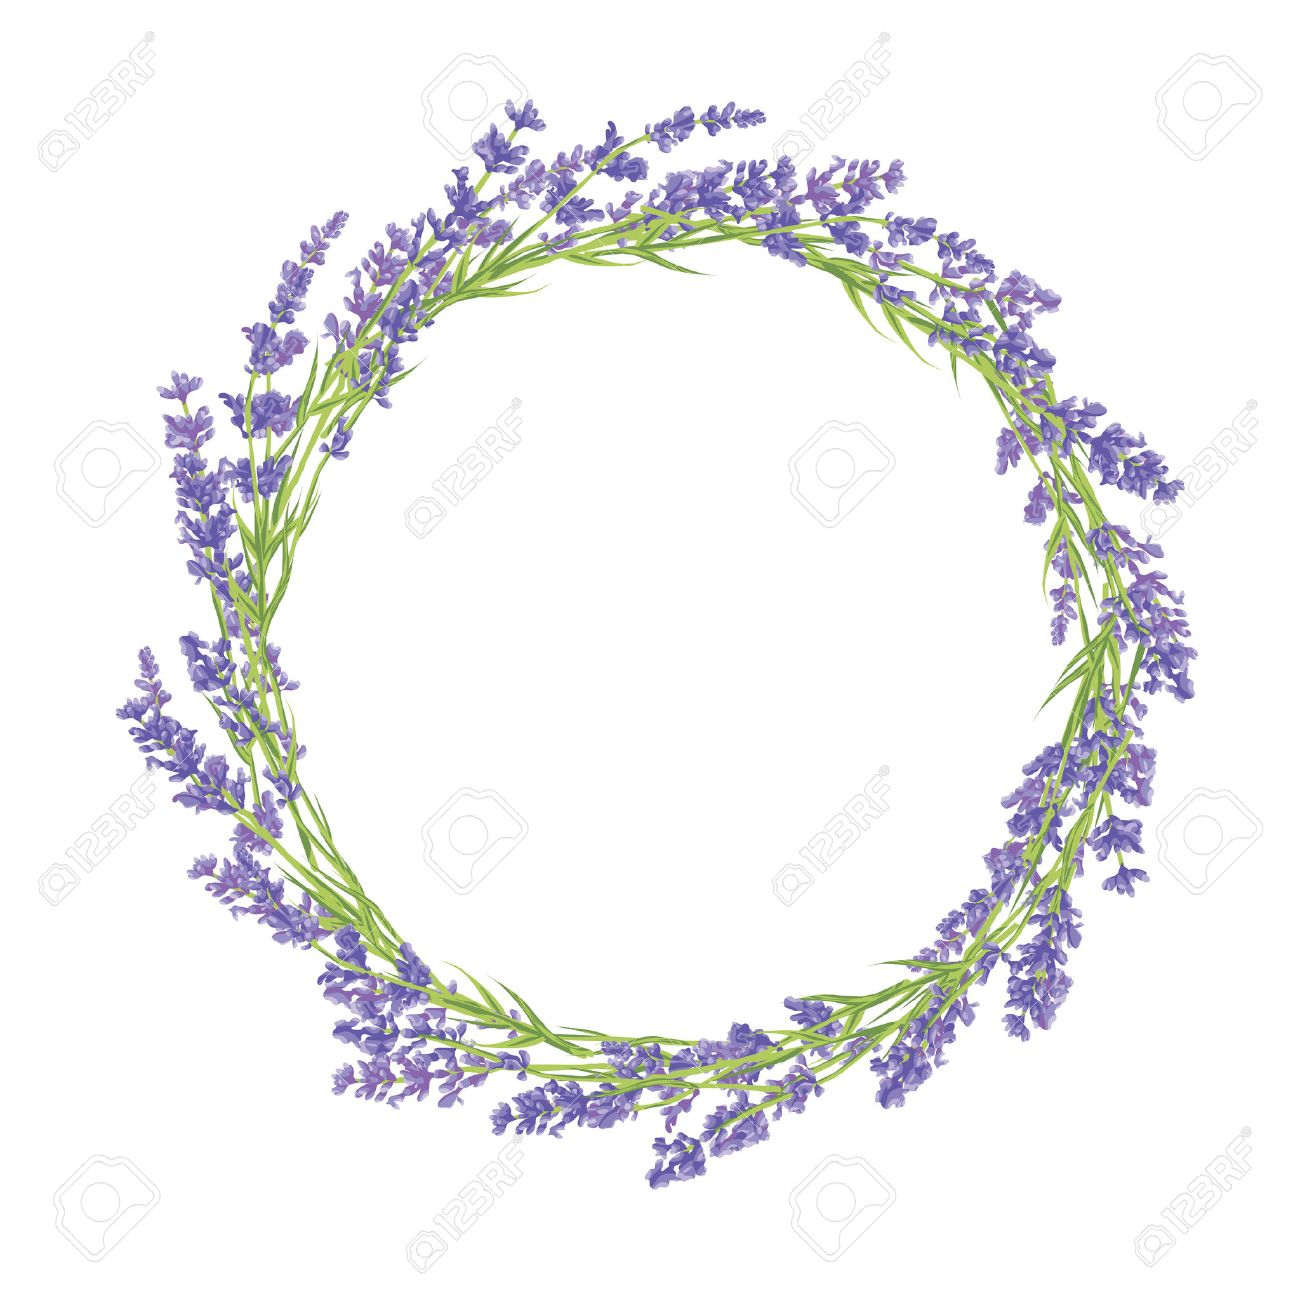 Circle of hand drawn lavender flowers hand drawn design for thank banco de imagens circle of hand drawn lavender flowers hand drawn design for thank you card greeting card or invitation vector illustration stopboris Gallery